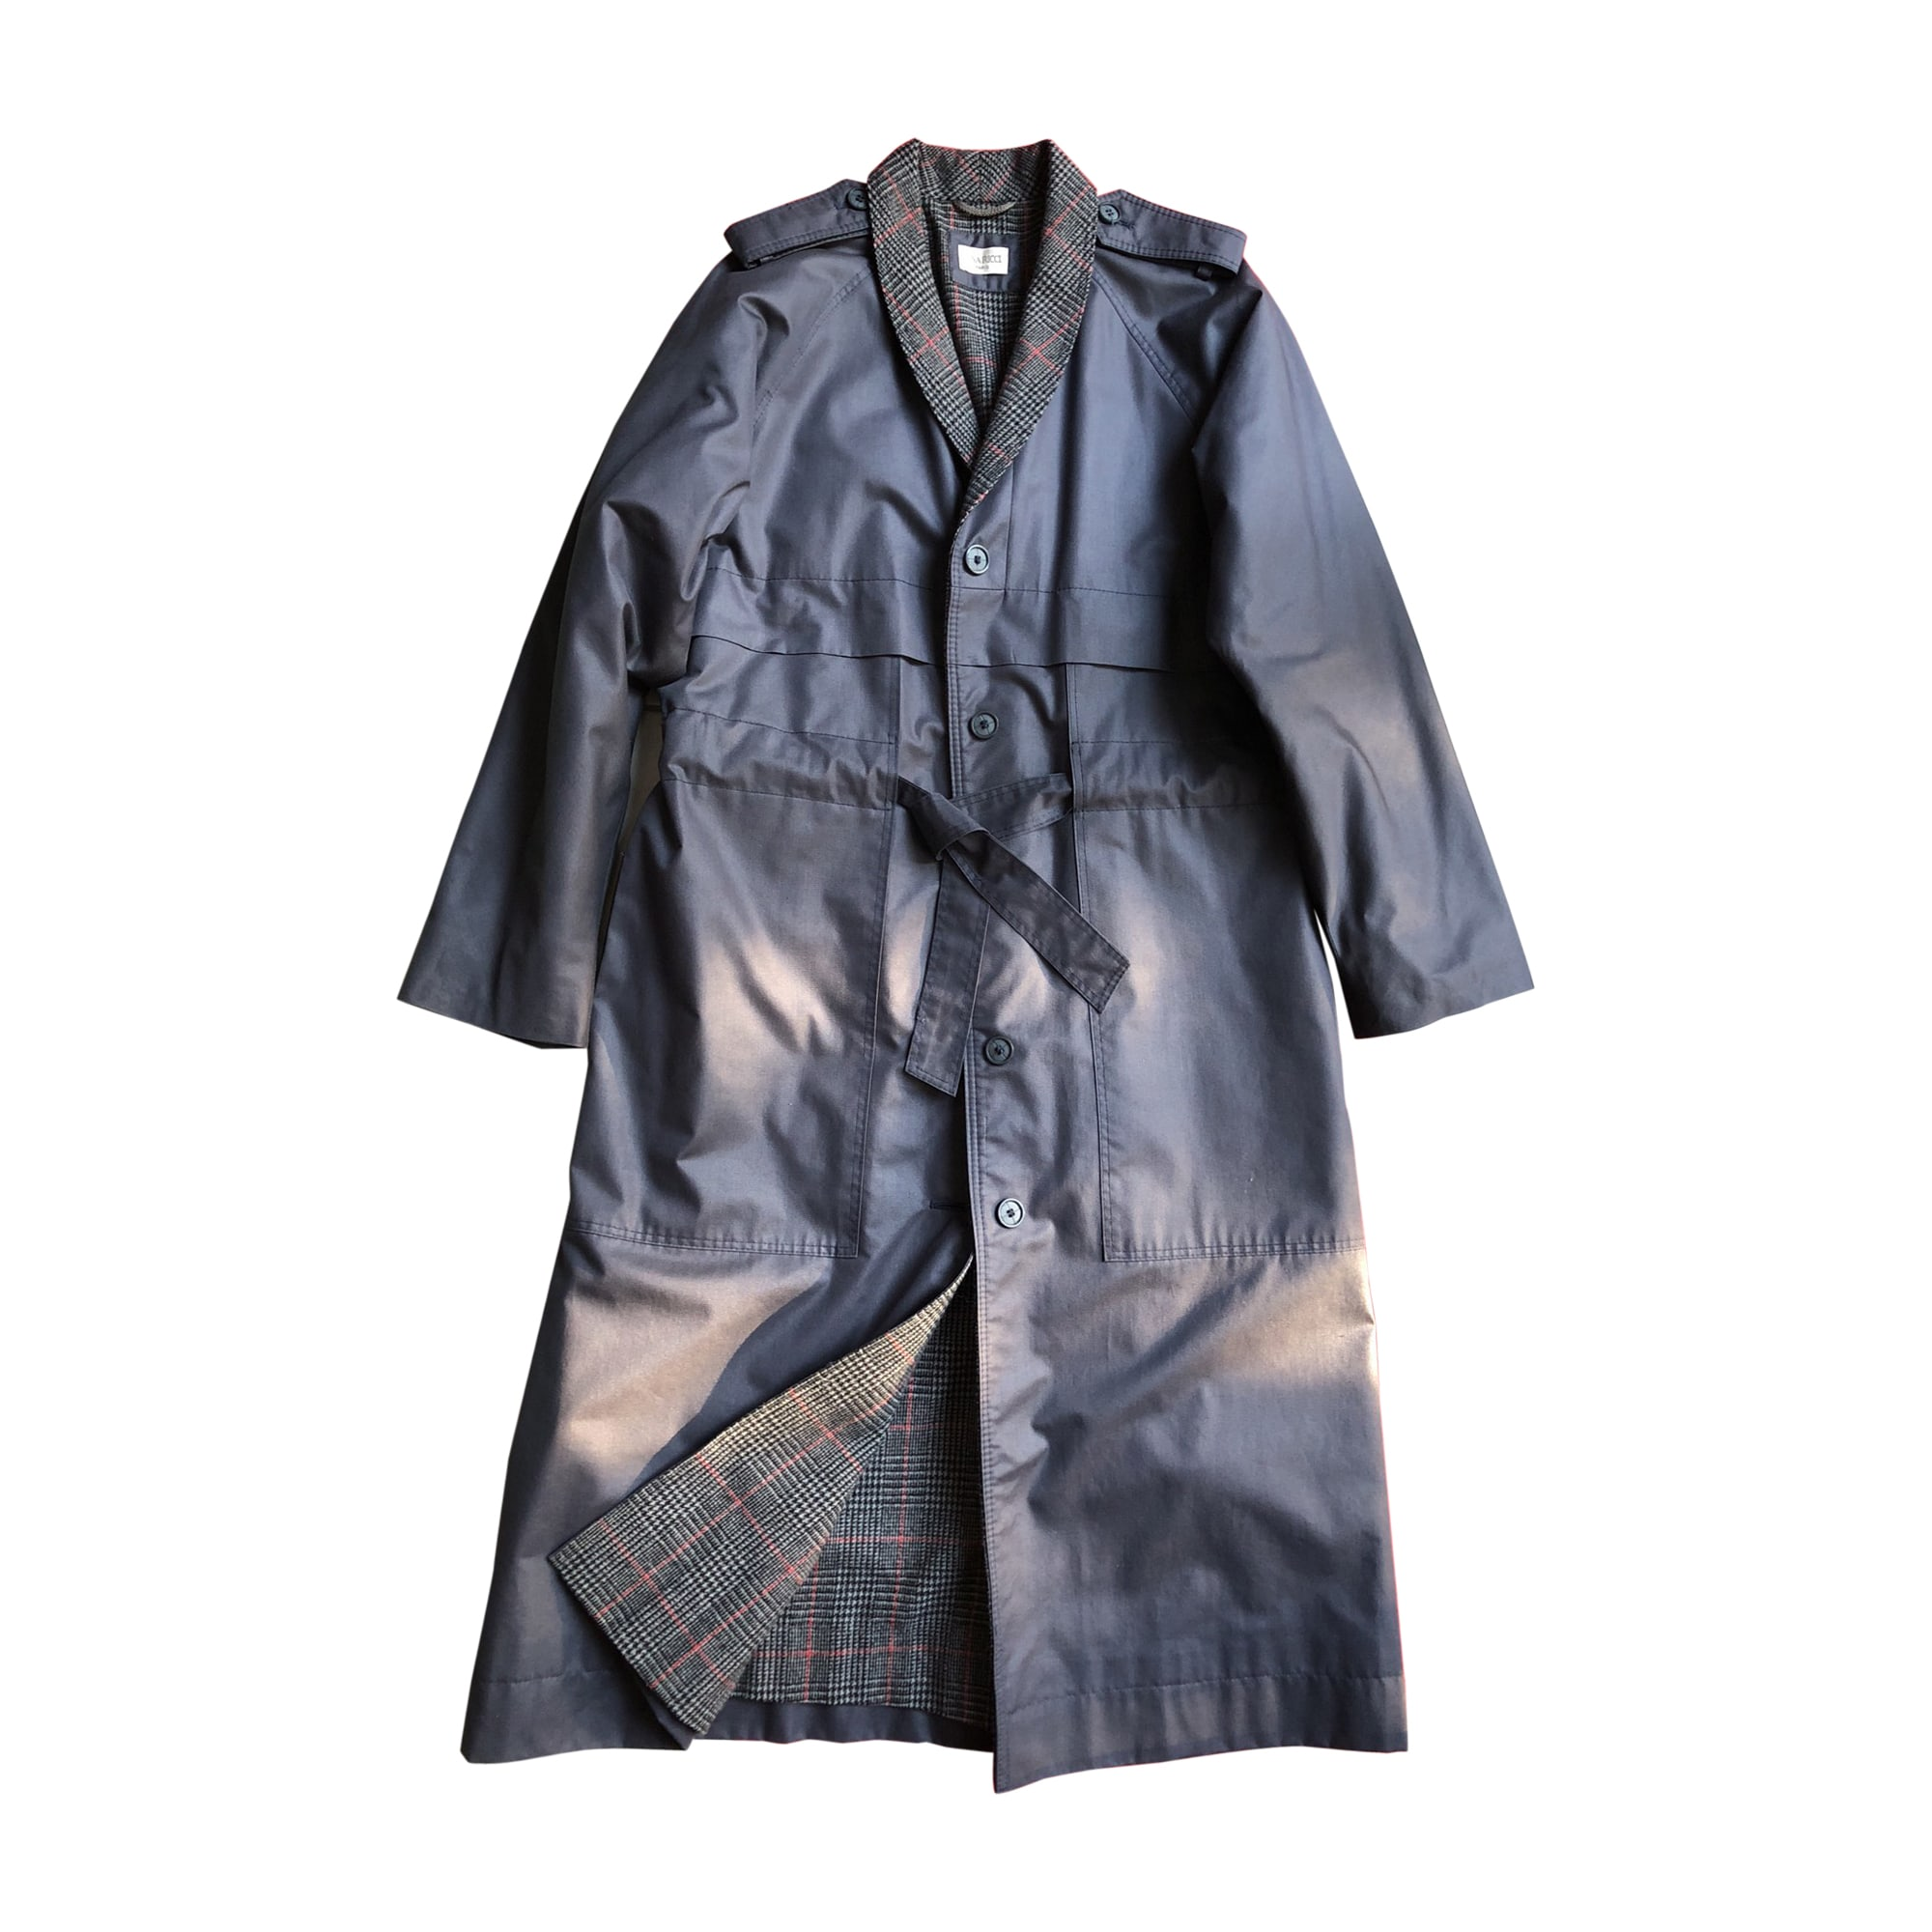 Imperméable, trench NINA RICCI Gris, anthracite